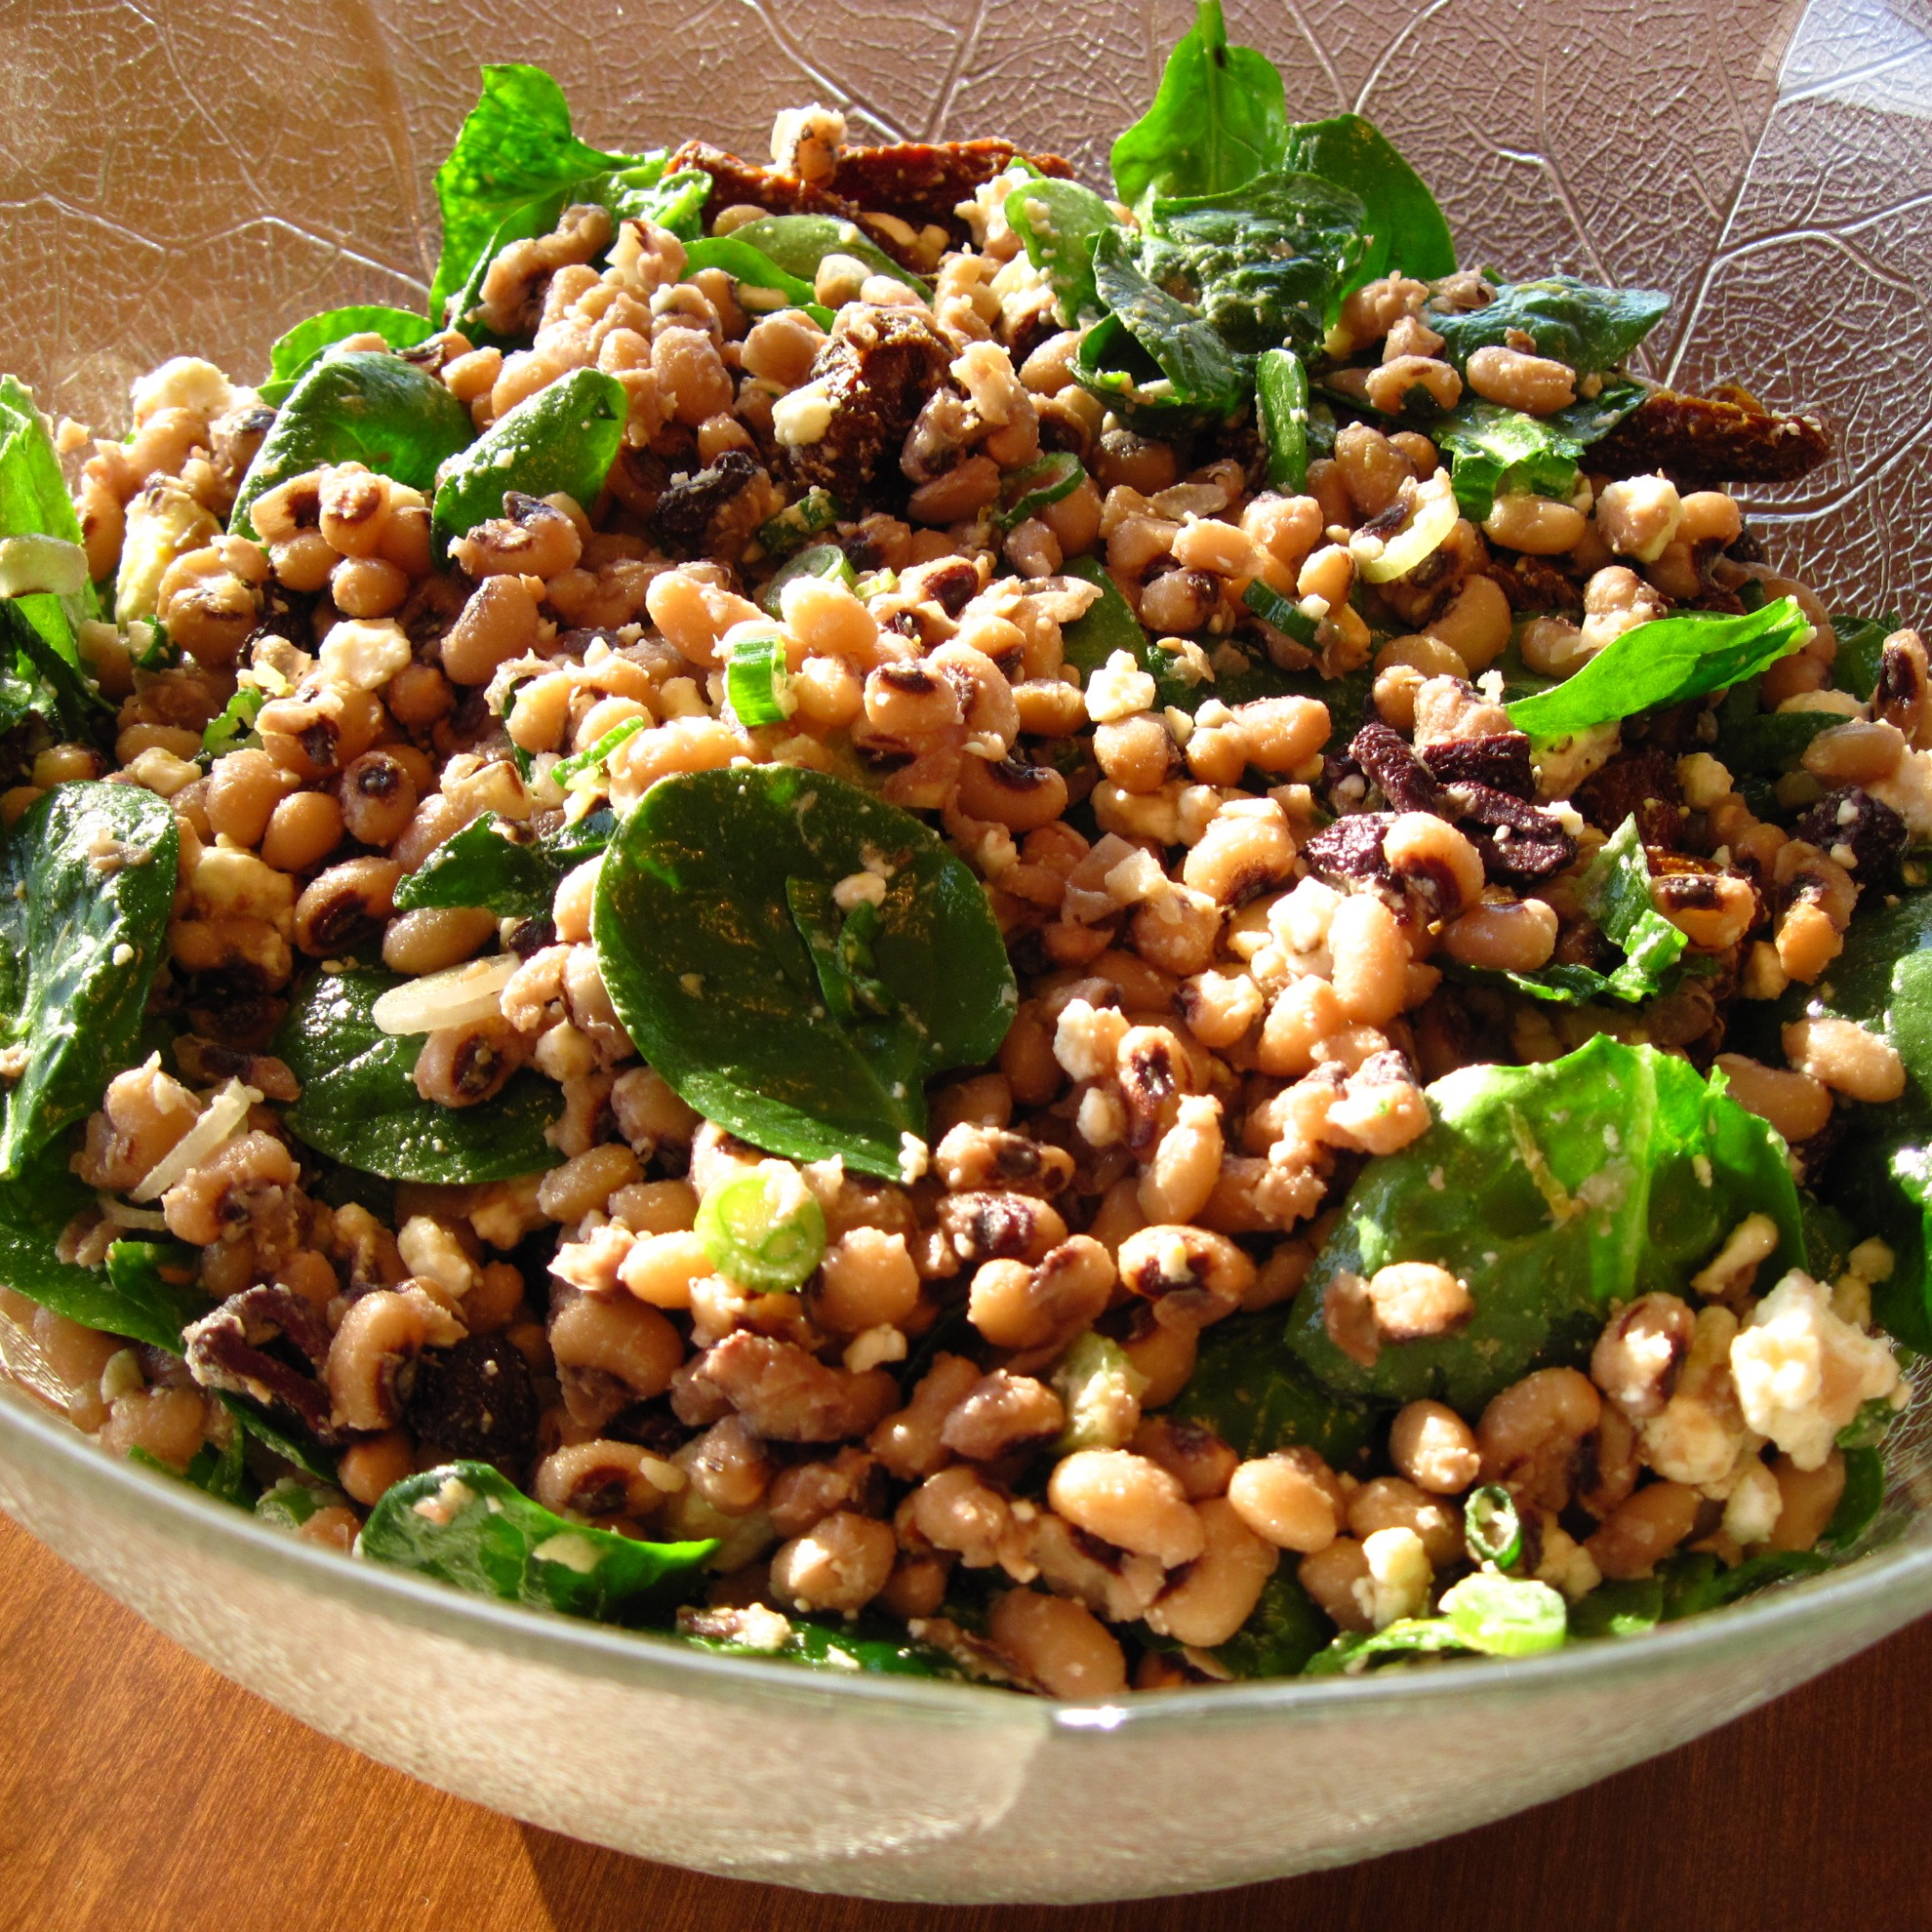 Greek Black-Eyed Peas Salad | In the kitchen with Kath